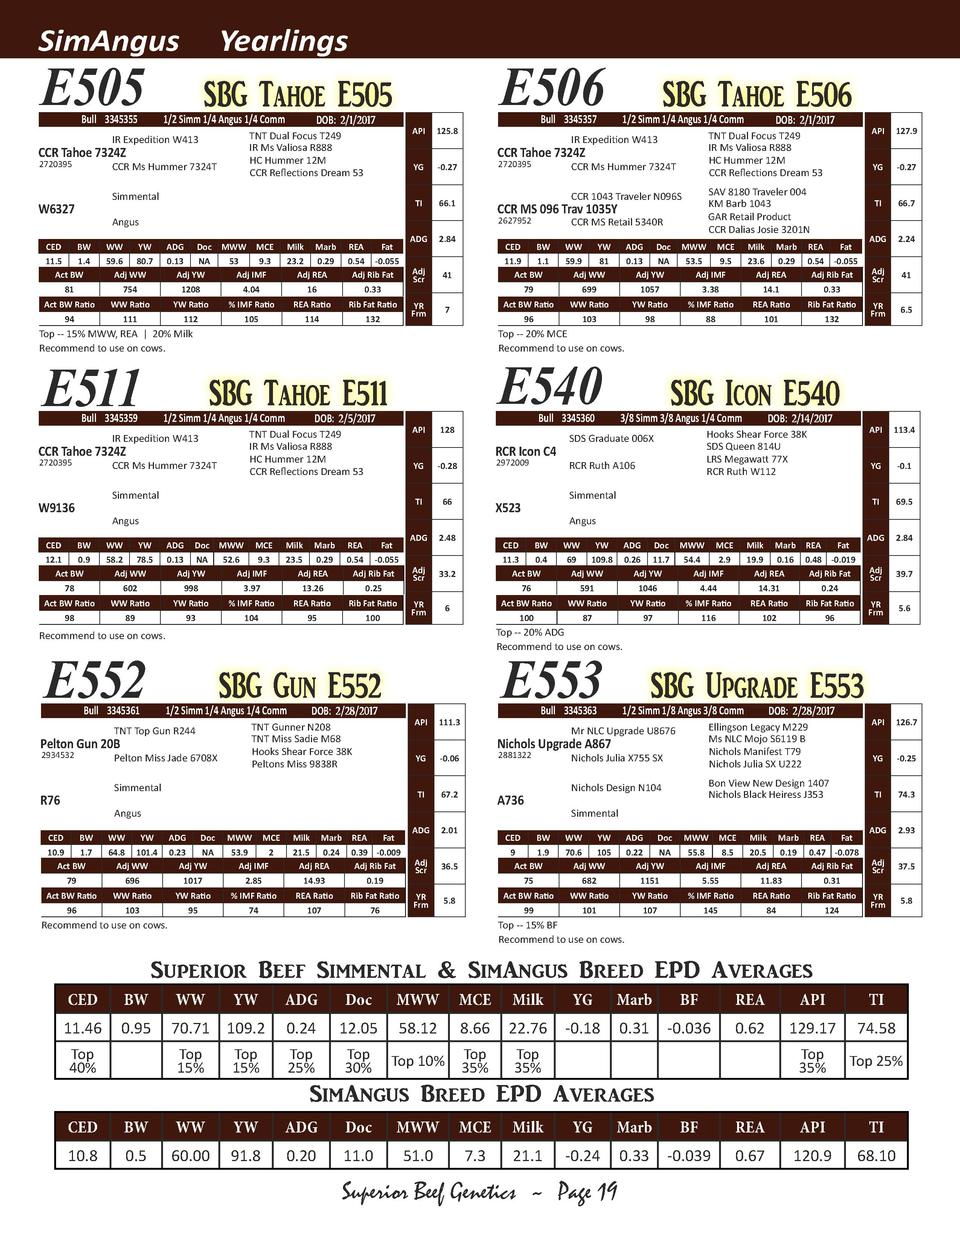 SimAngus  E505  Yearlings  1 2 Simm 1 4 Angus 1 4 Comm  CCR Tahoe 7324Z  CCR Ms Hummer 7324T Simmental  W6327 CED  DOB  2 ...